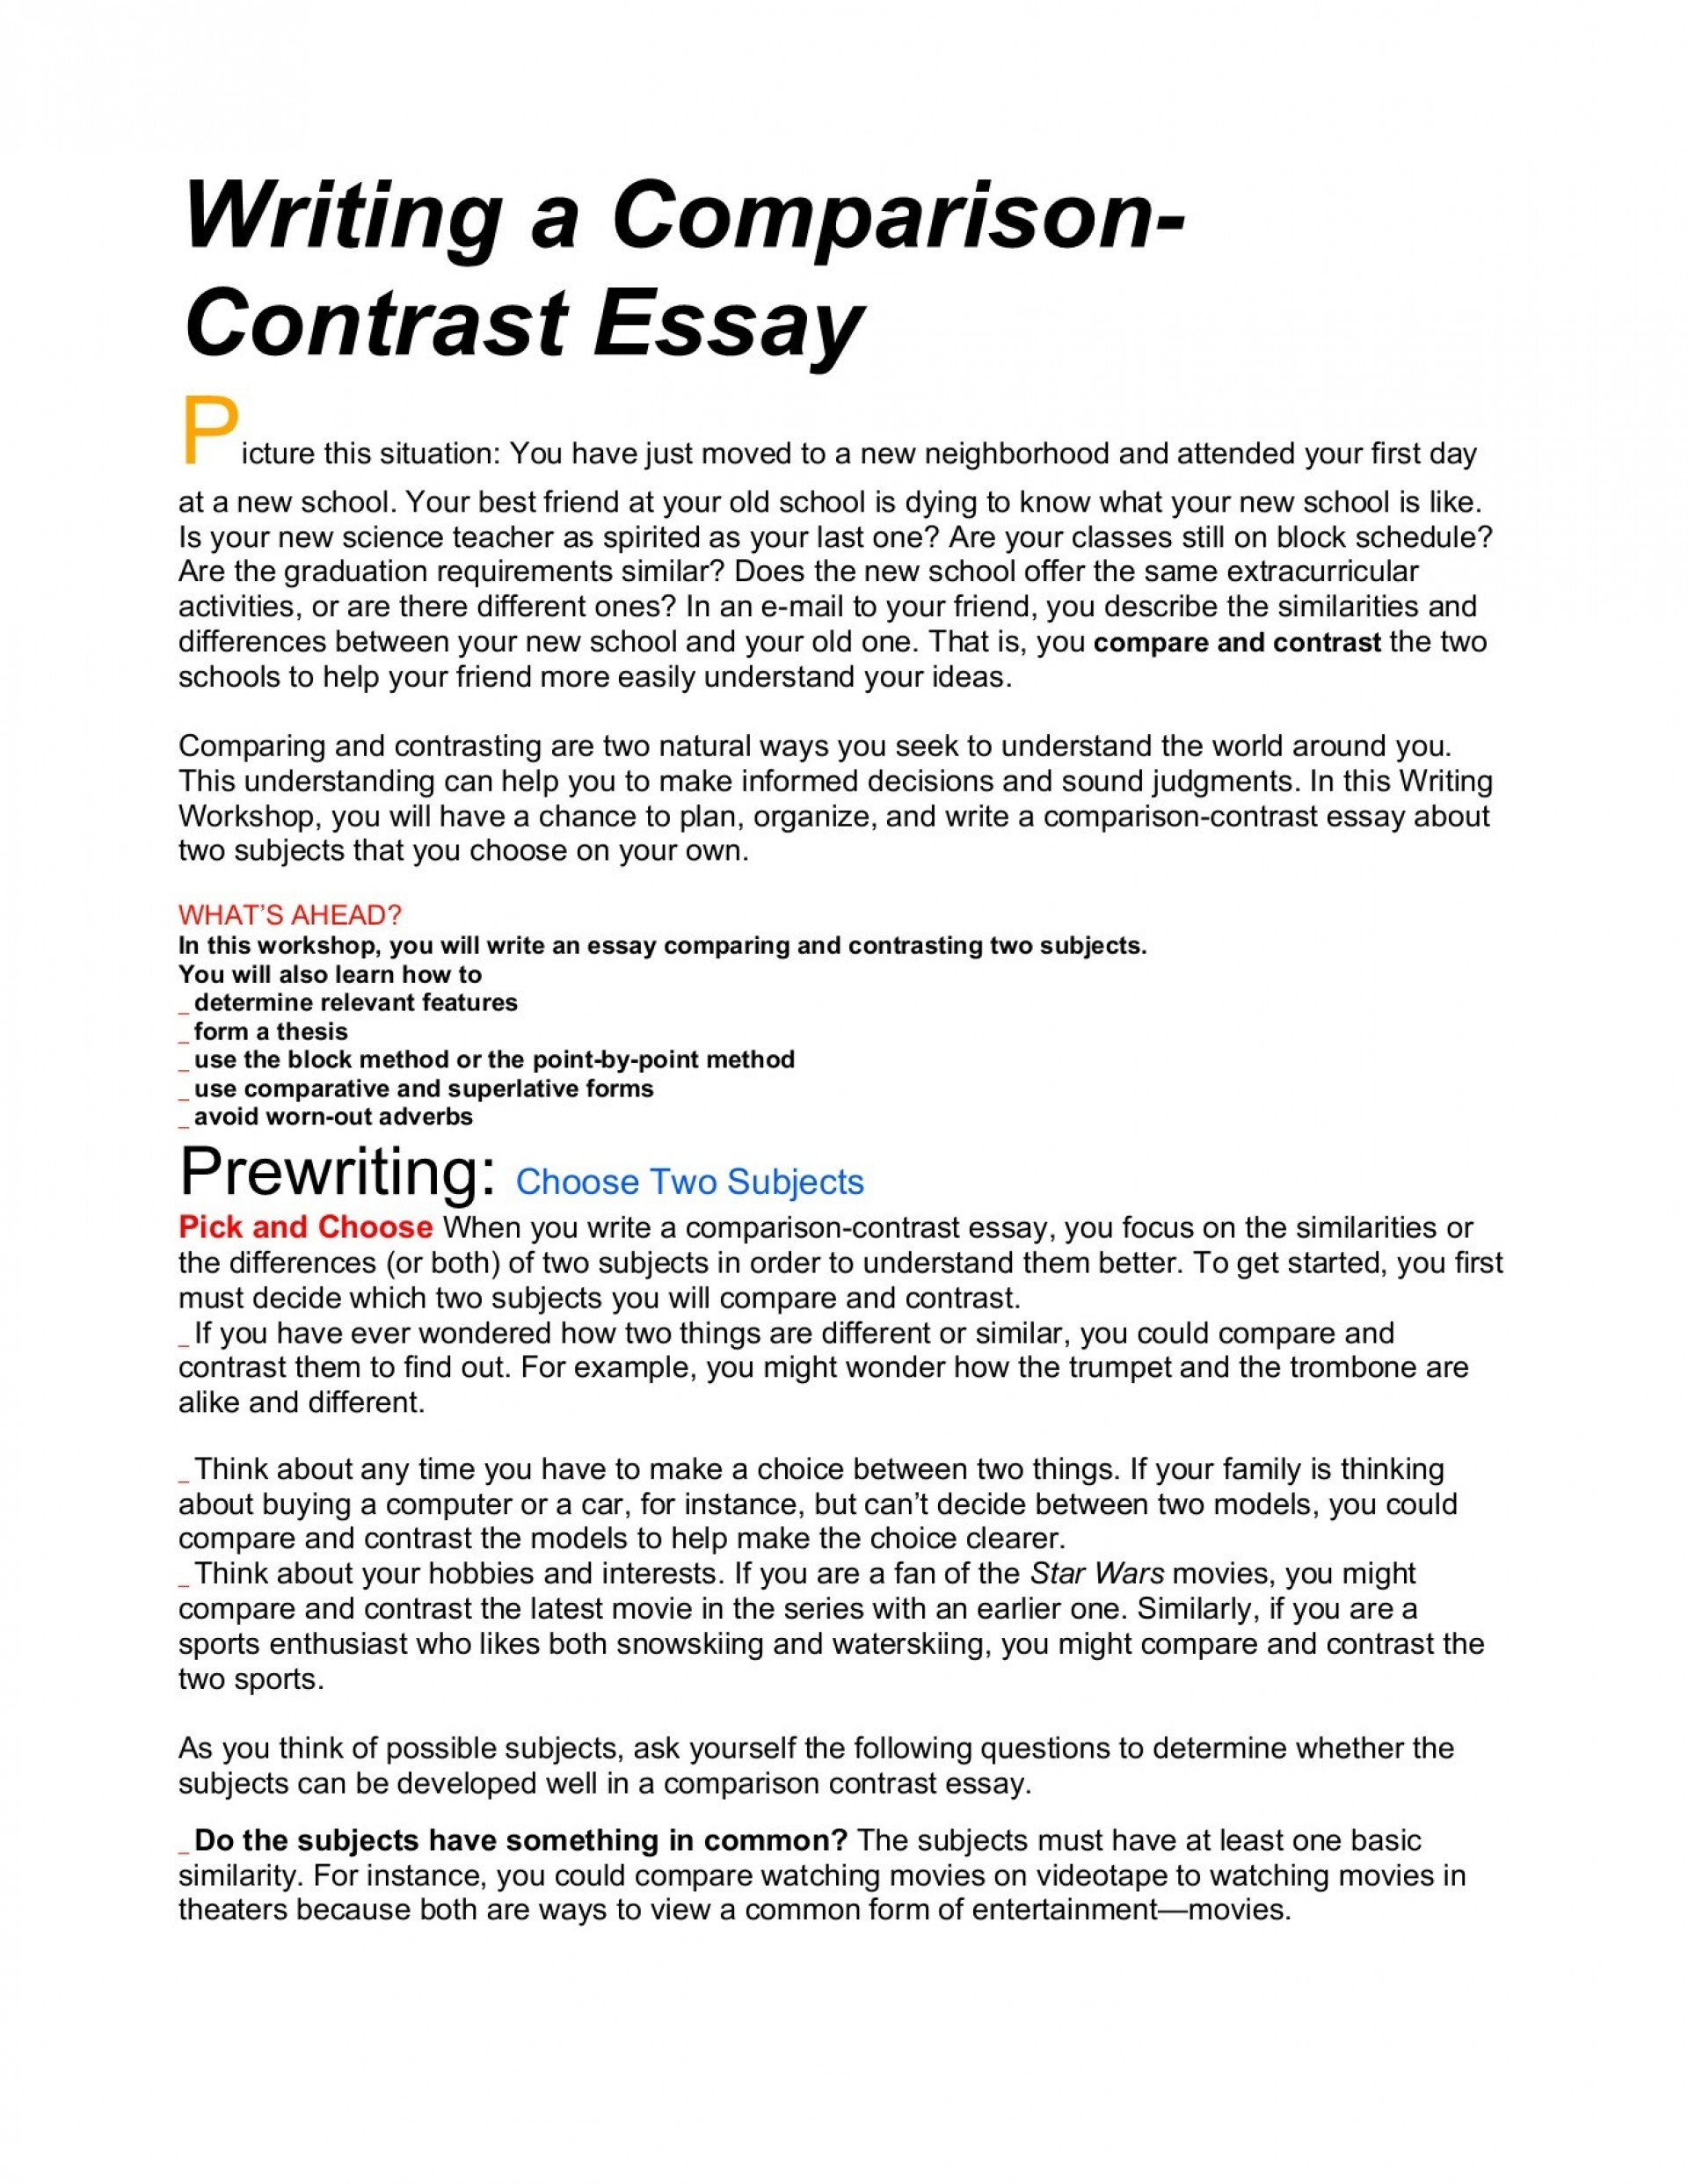 Adversarial and inquisitorial systems essay help